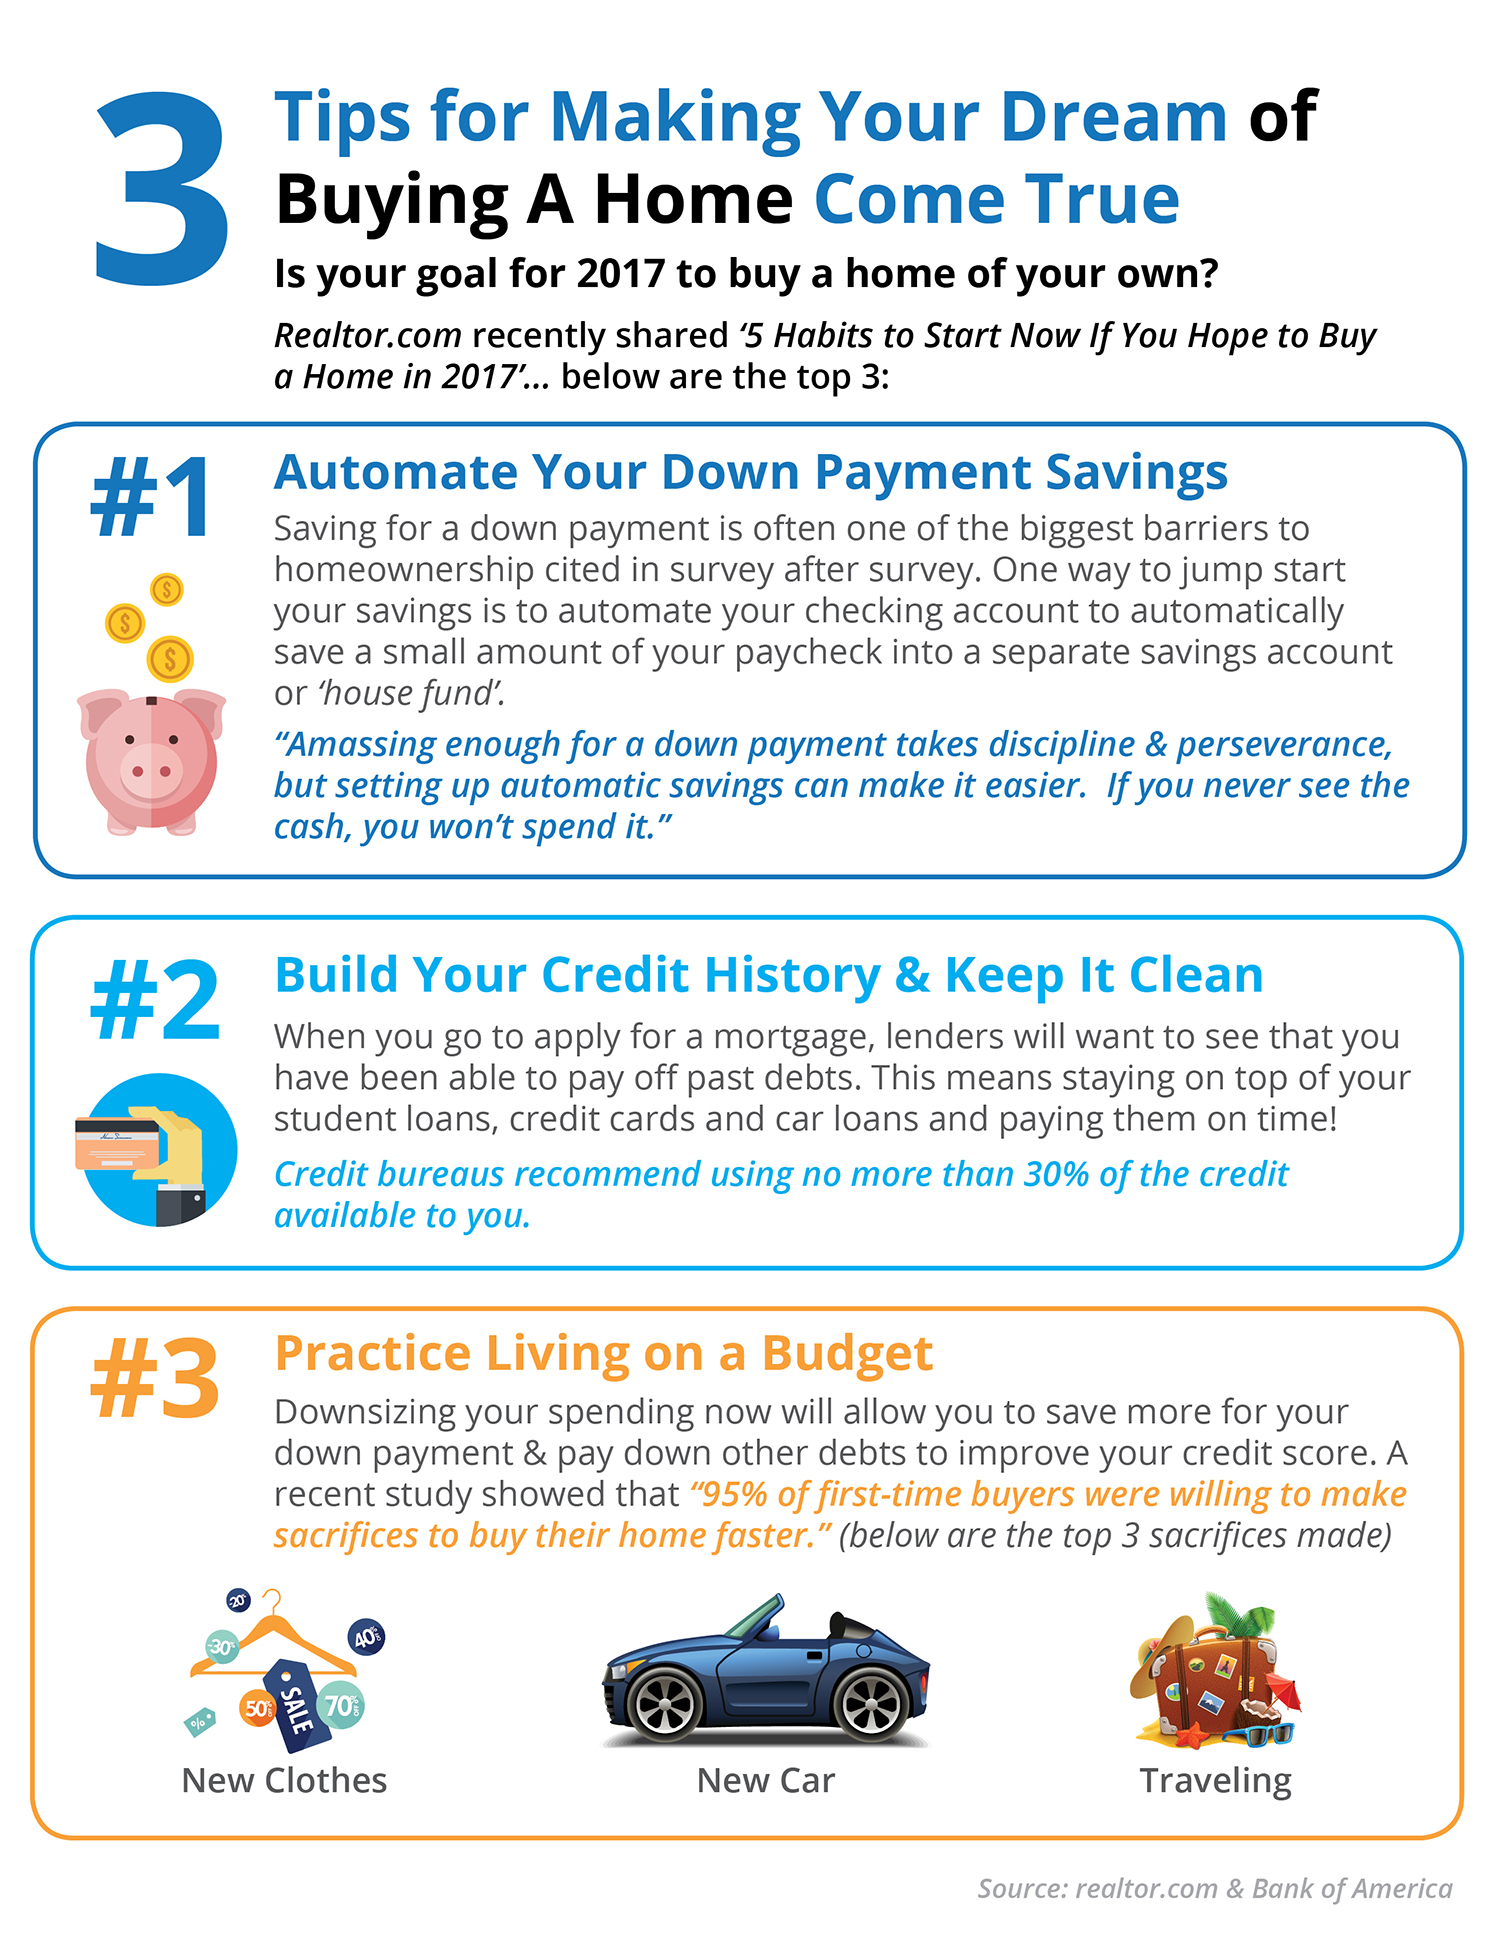 Info graph on how to save to find your dream home